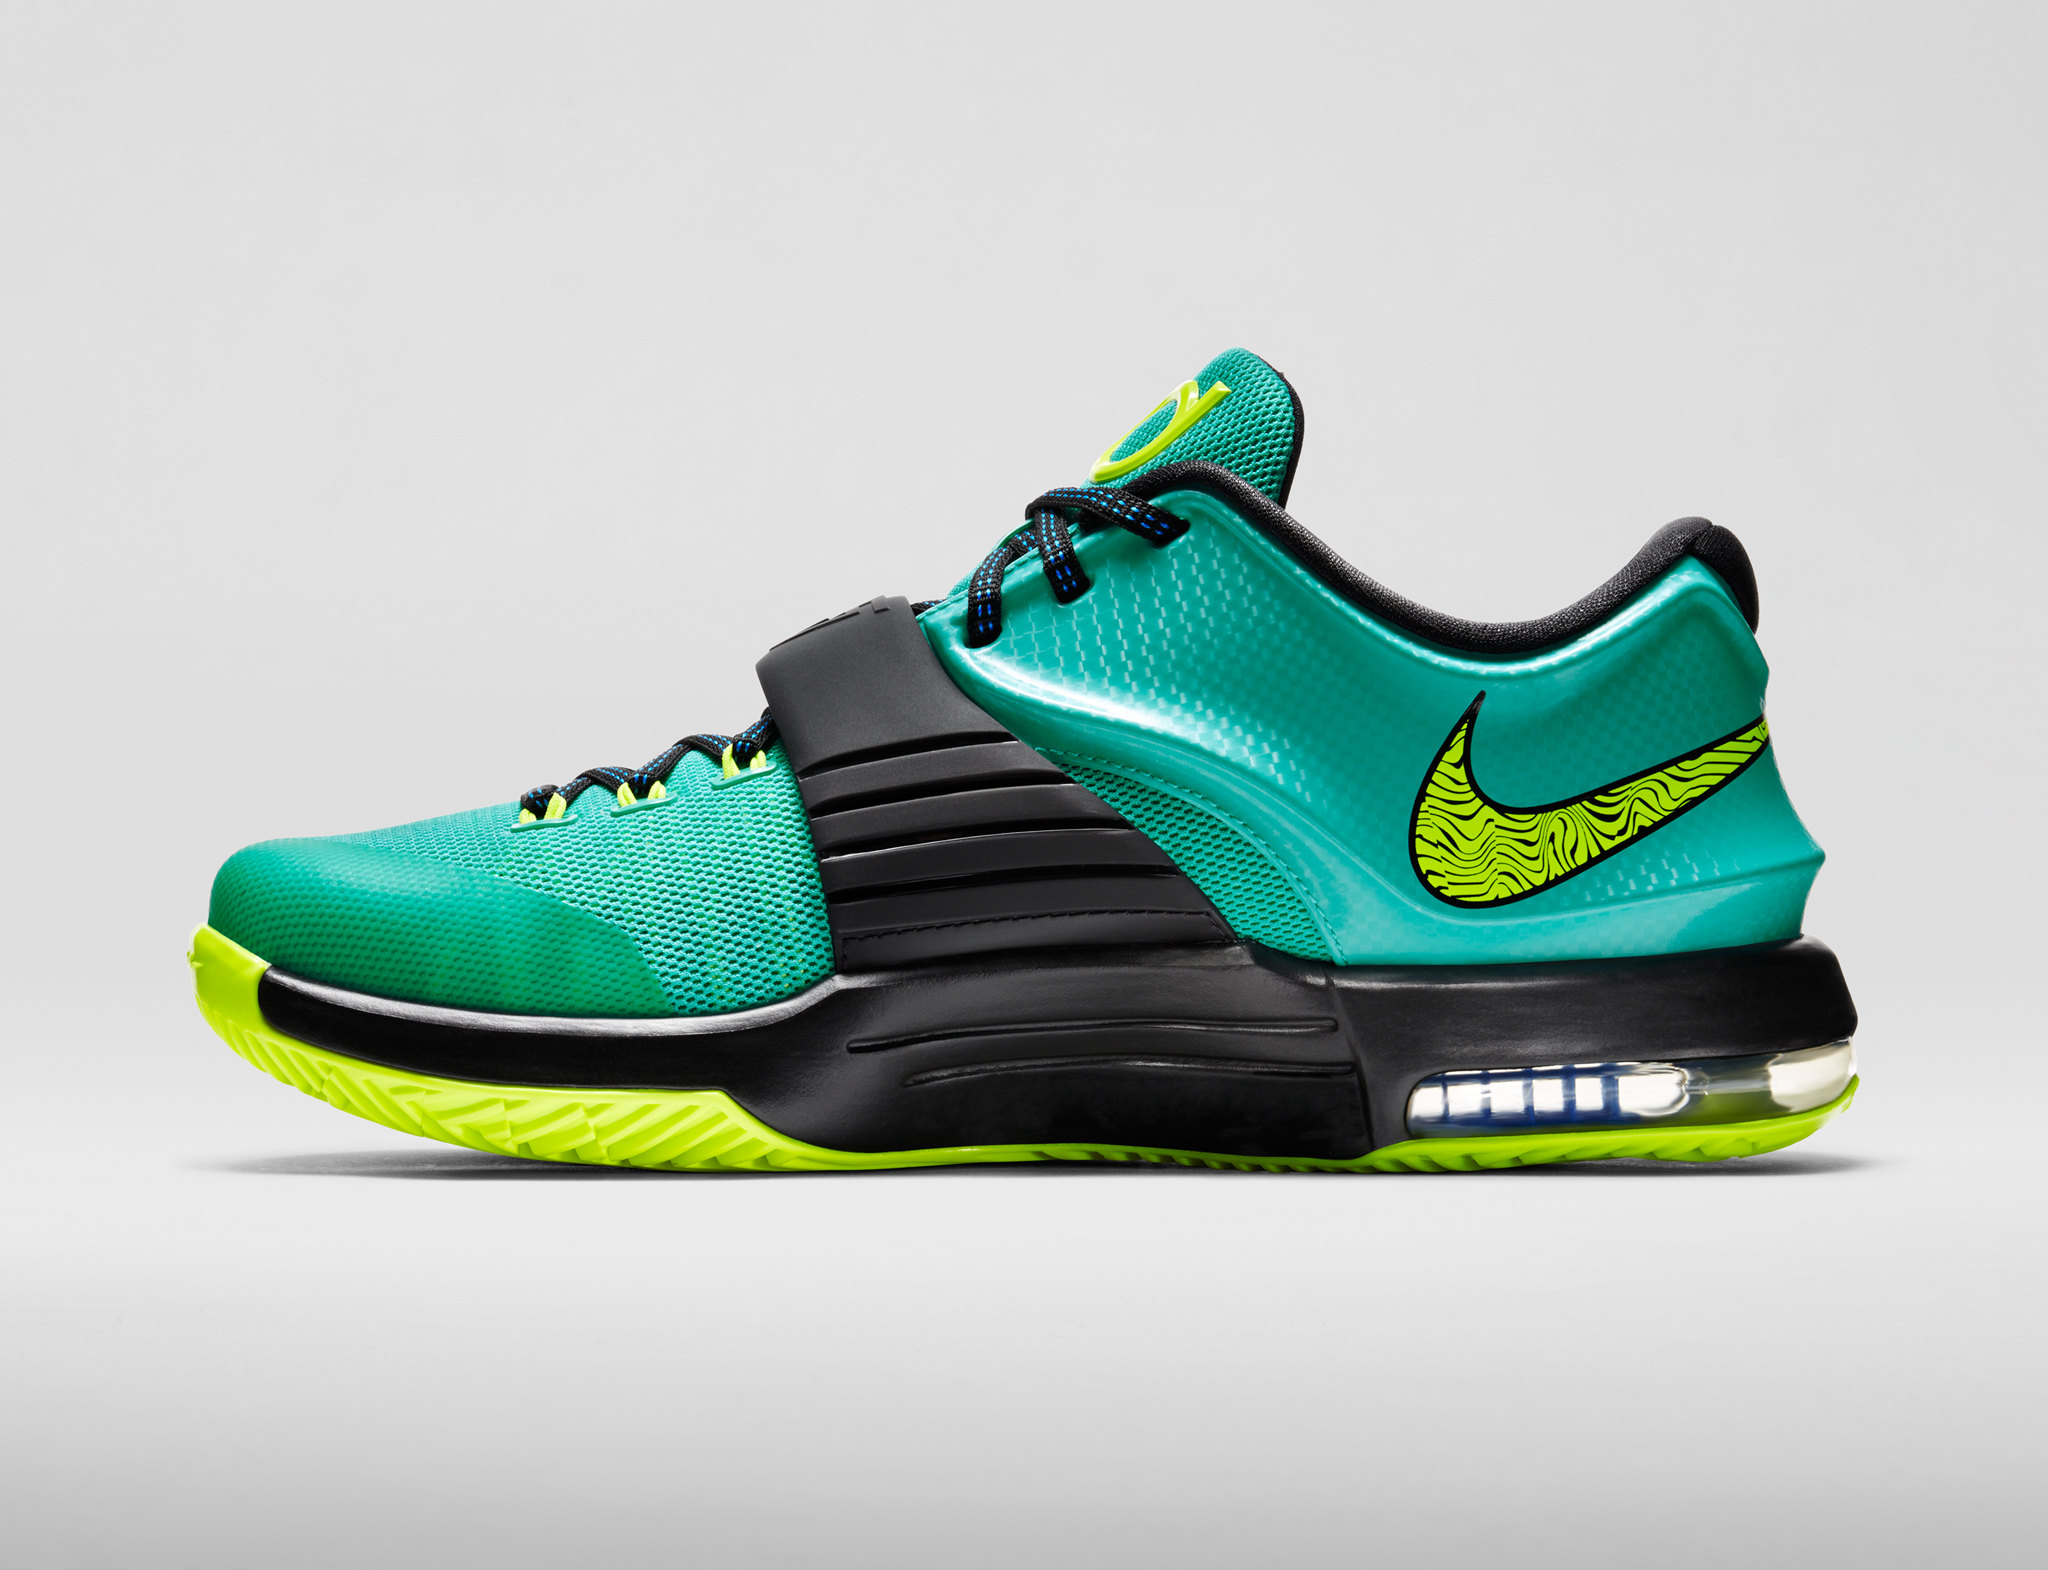 sports shoes 706d5 38360 ... sweden kd7 uprising elevating to the top nike news 5f961 30582